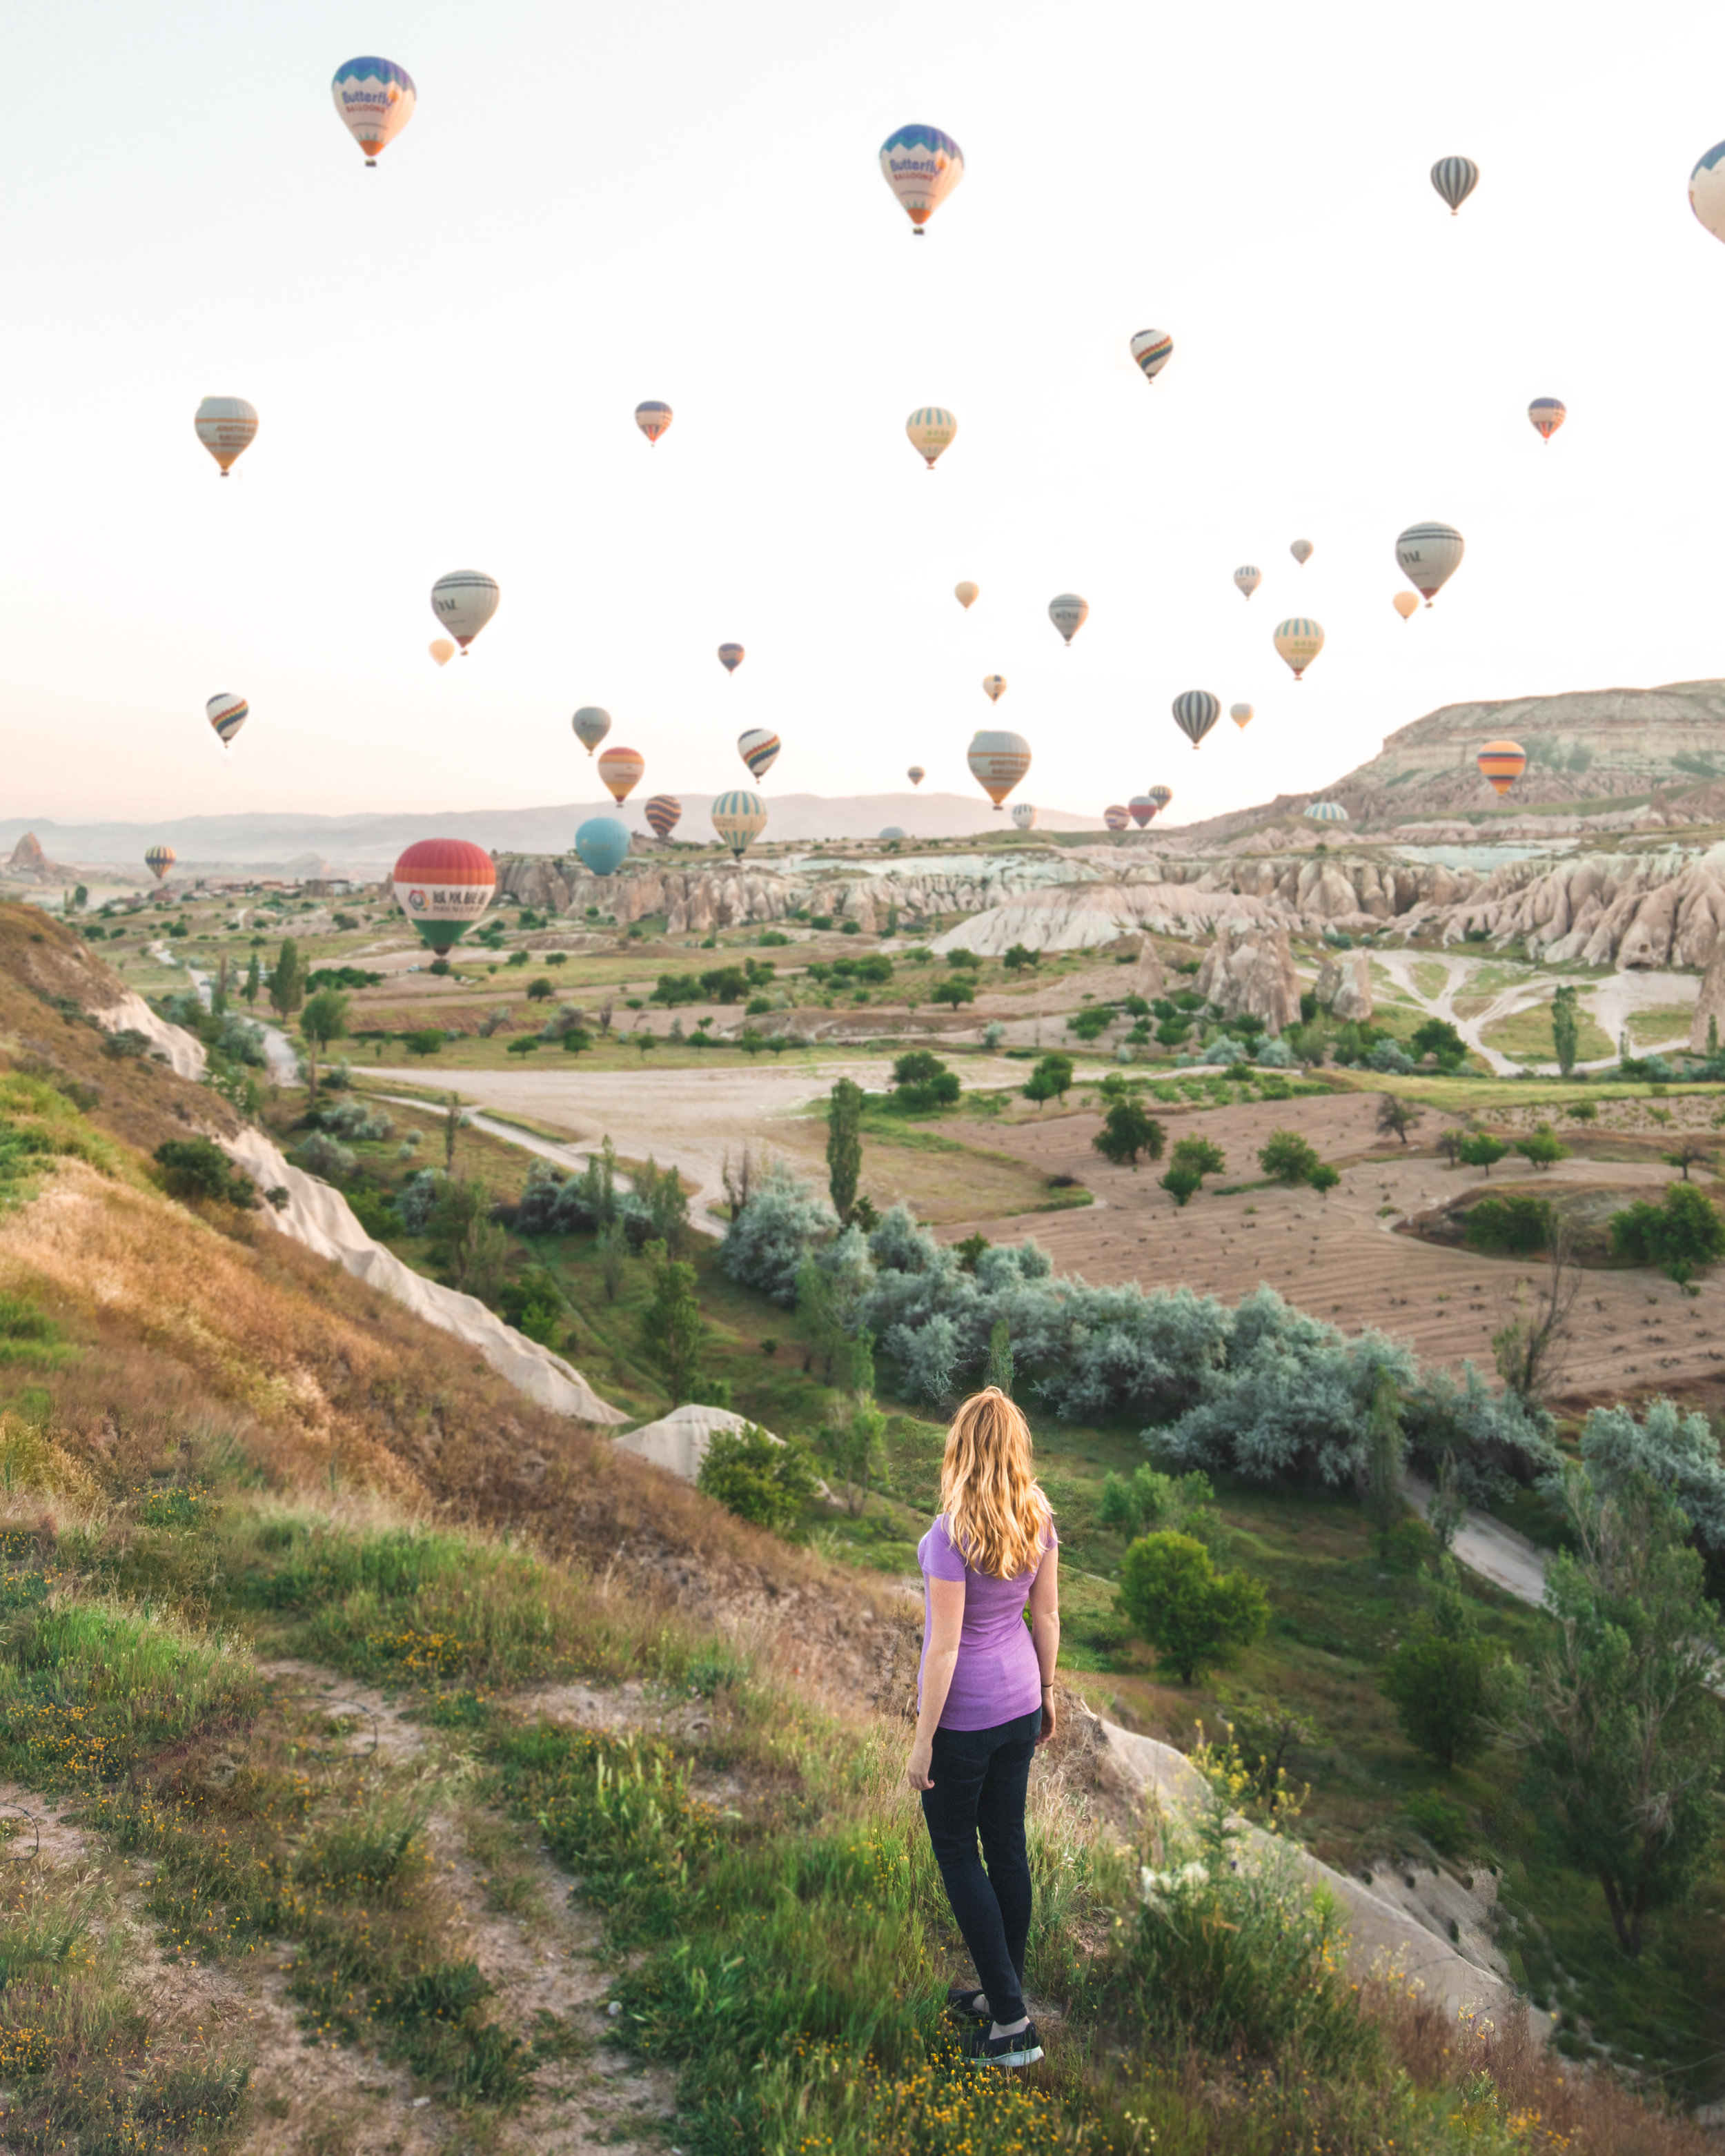 Rose Valley Landing Site - Photogenic places to visit in Cappadocia